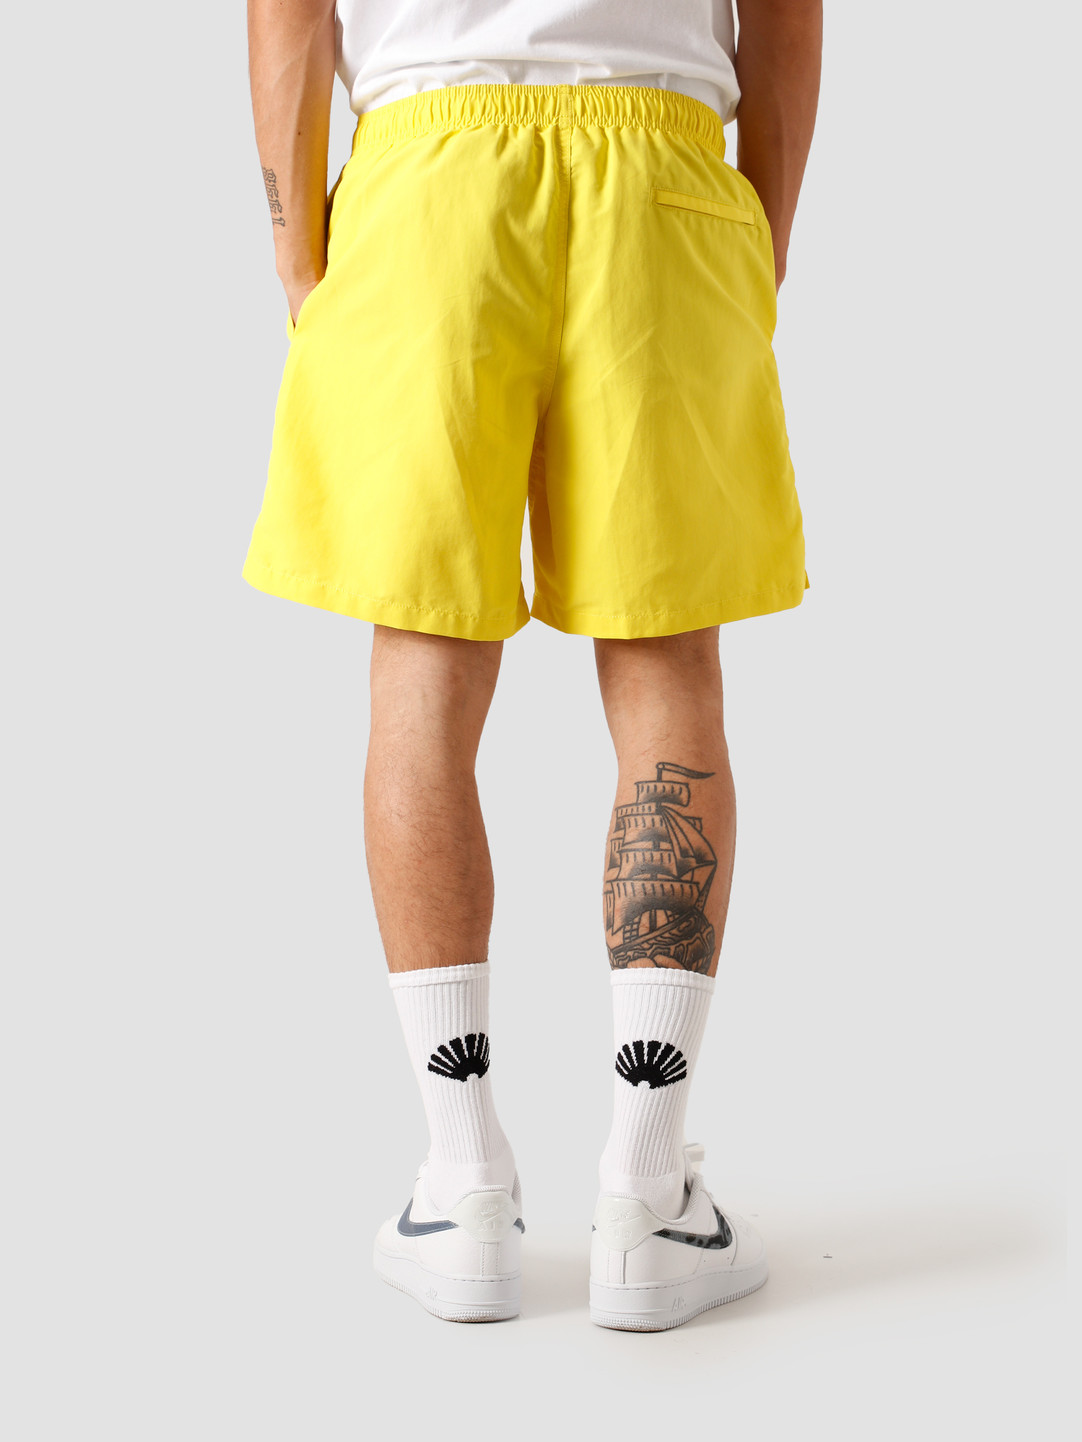 Stussy Stussy Stock Water Short Yellow 113120